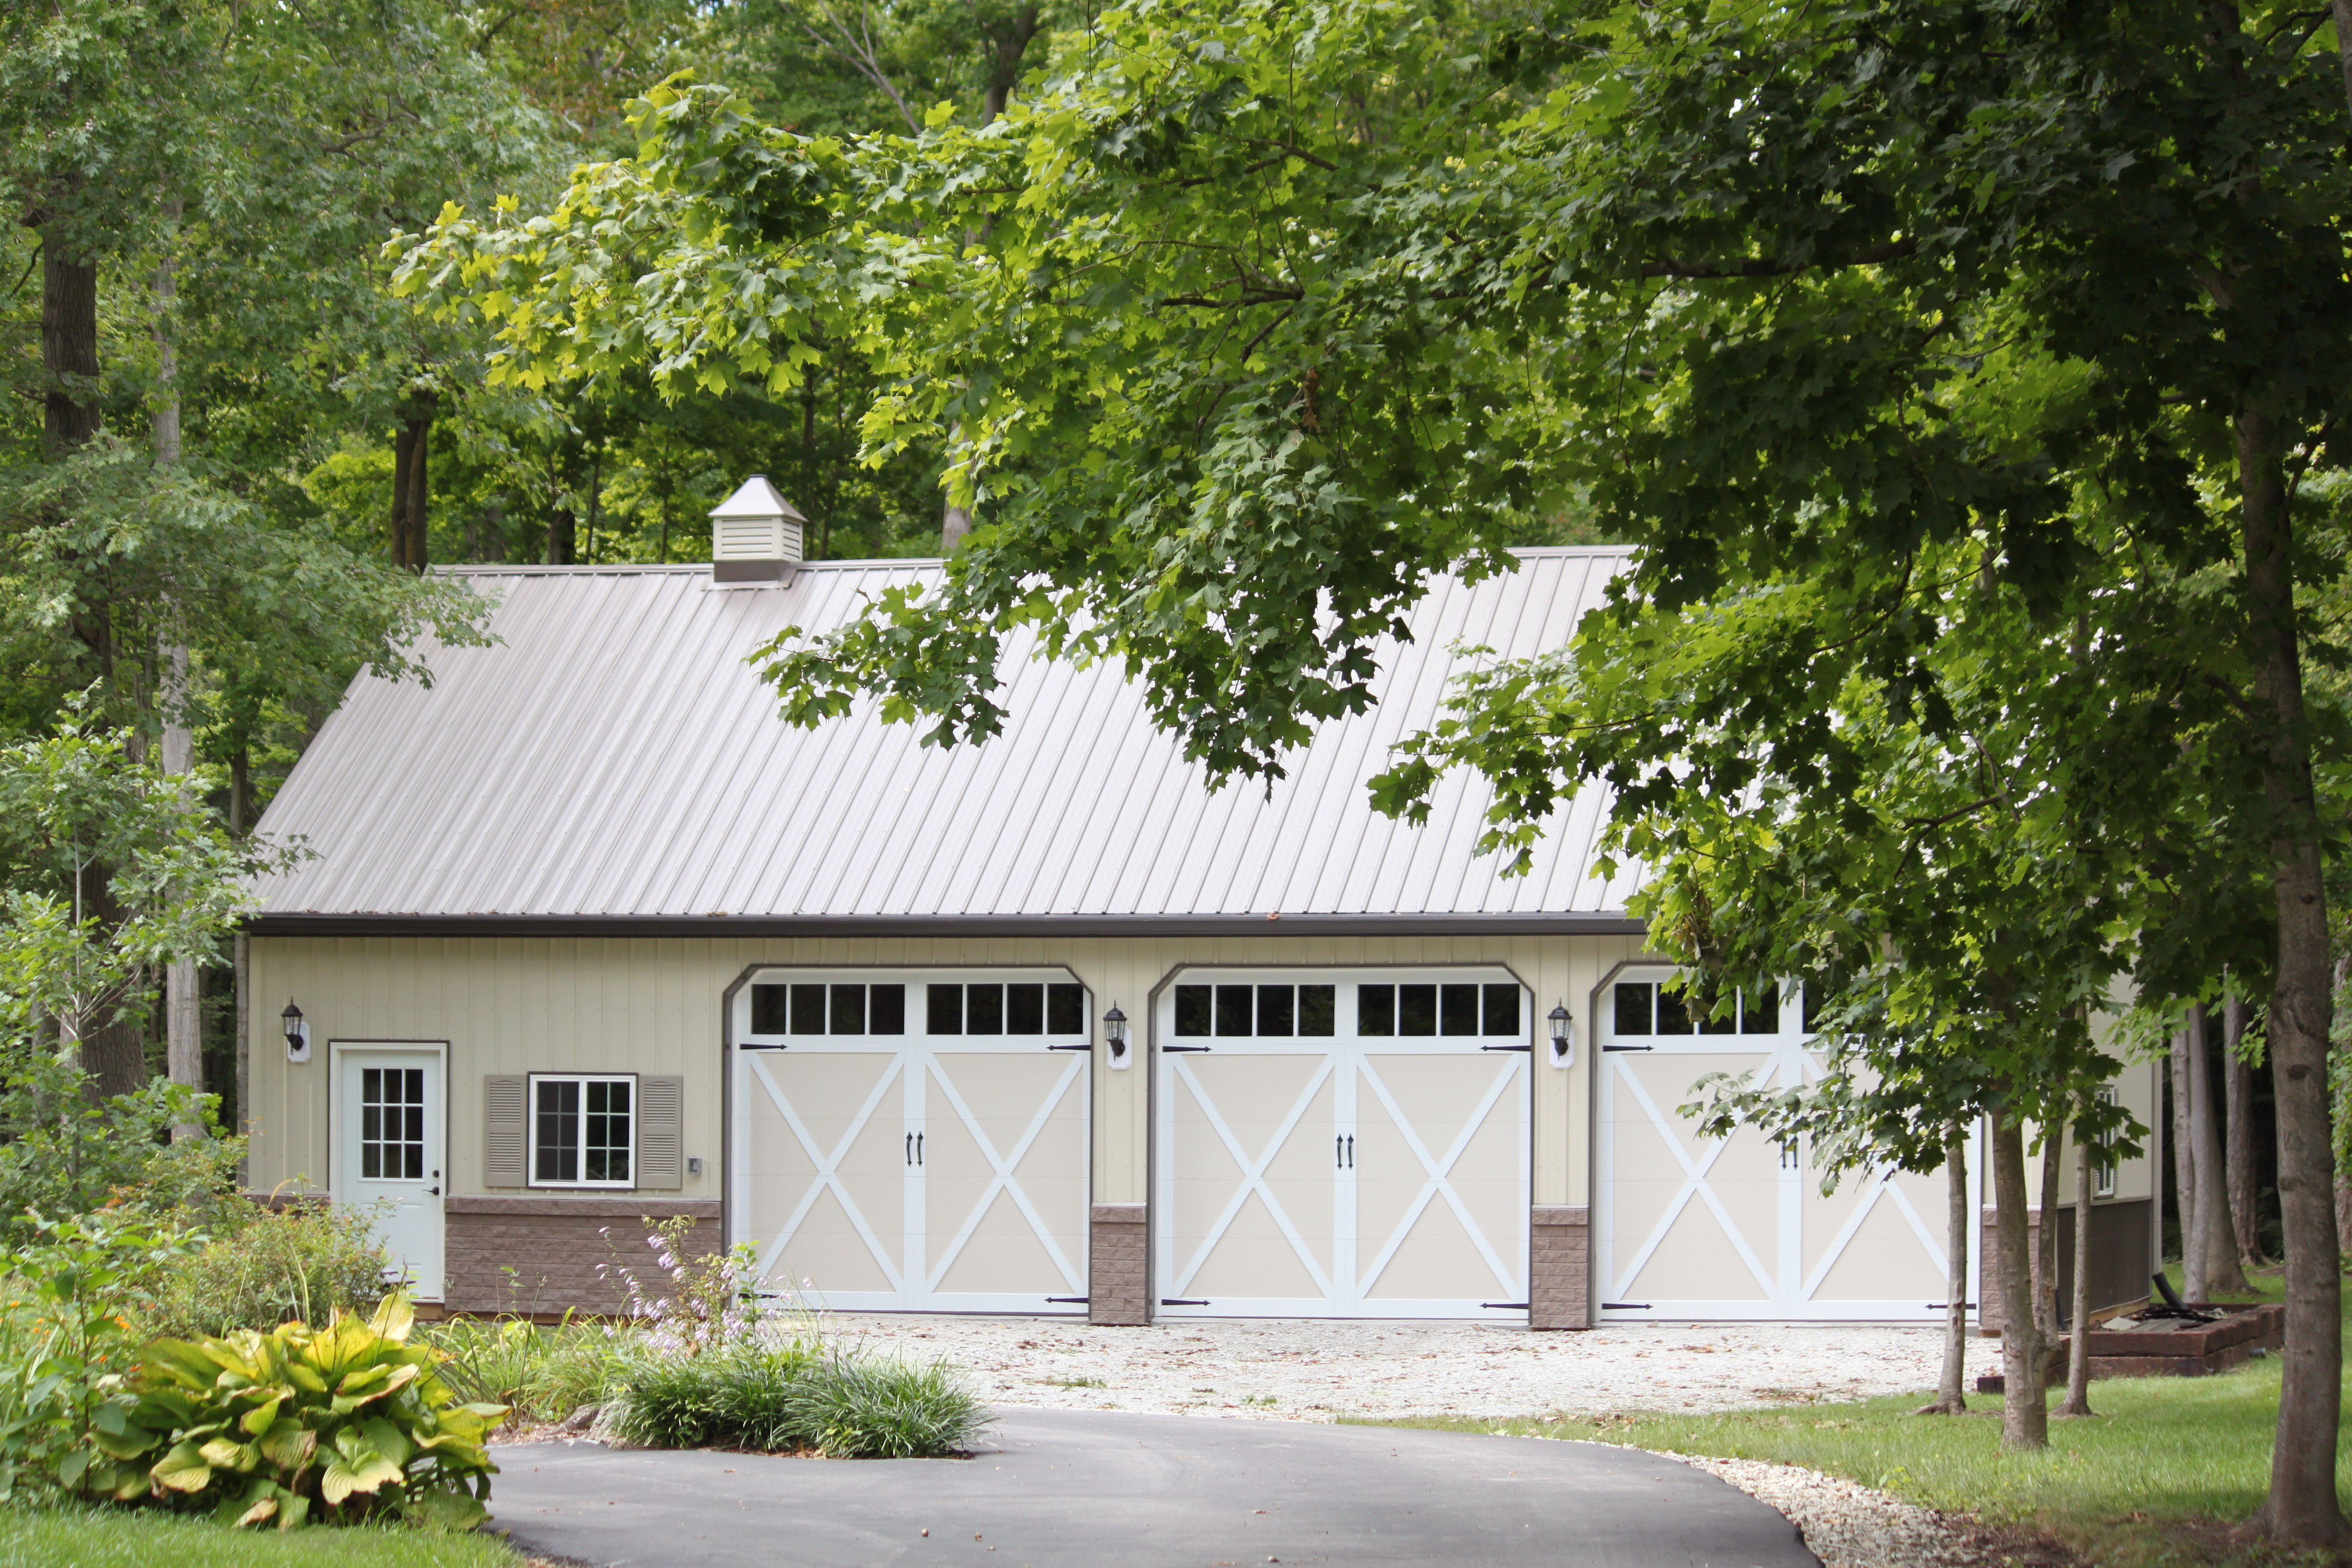 garage doors sioux fallsCarriage house garage doors by CHI Overhead Doors Model 5334A